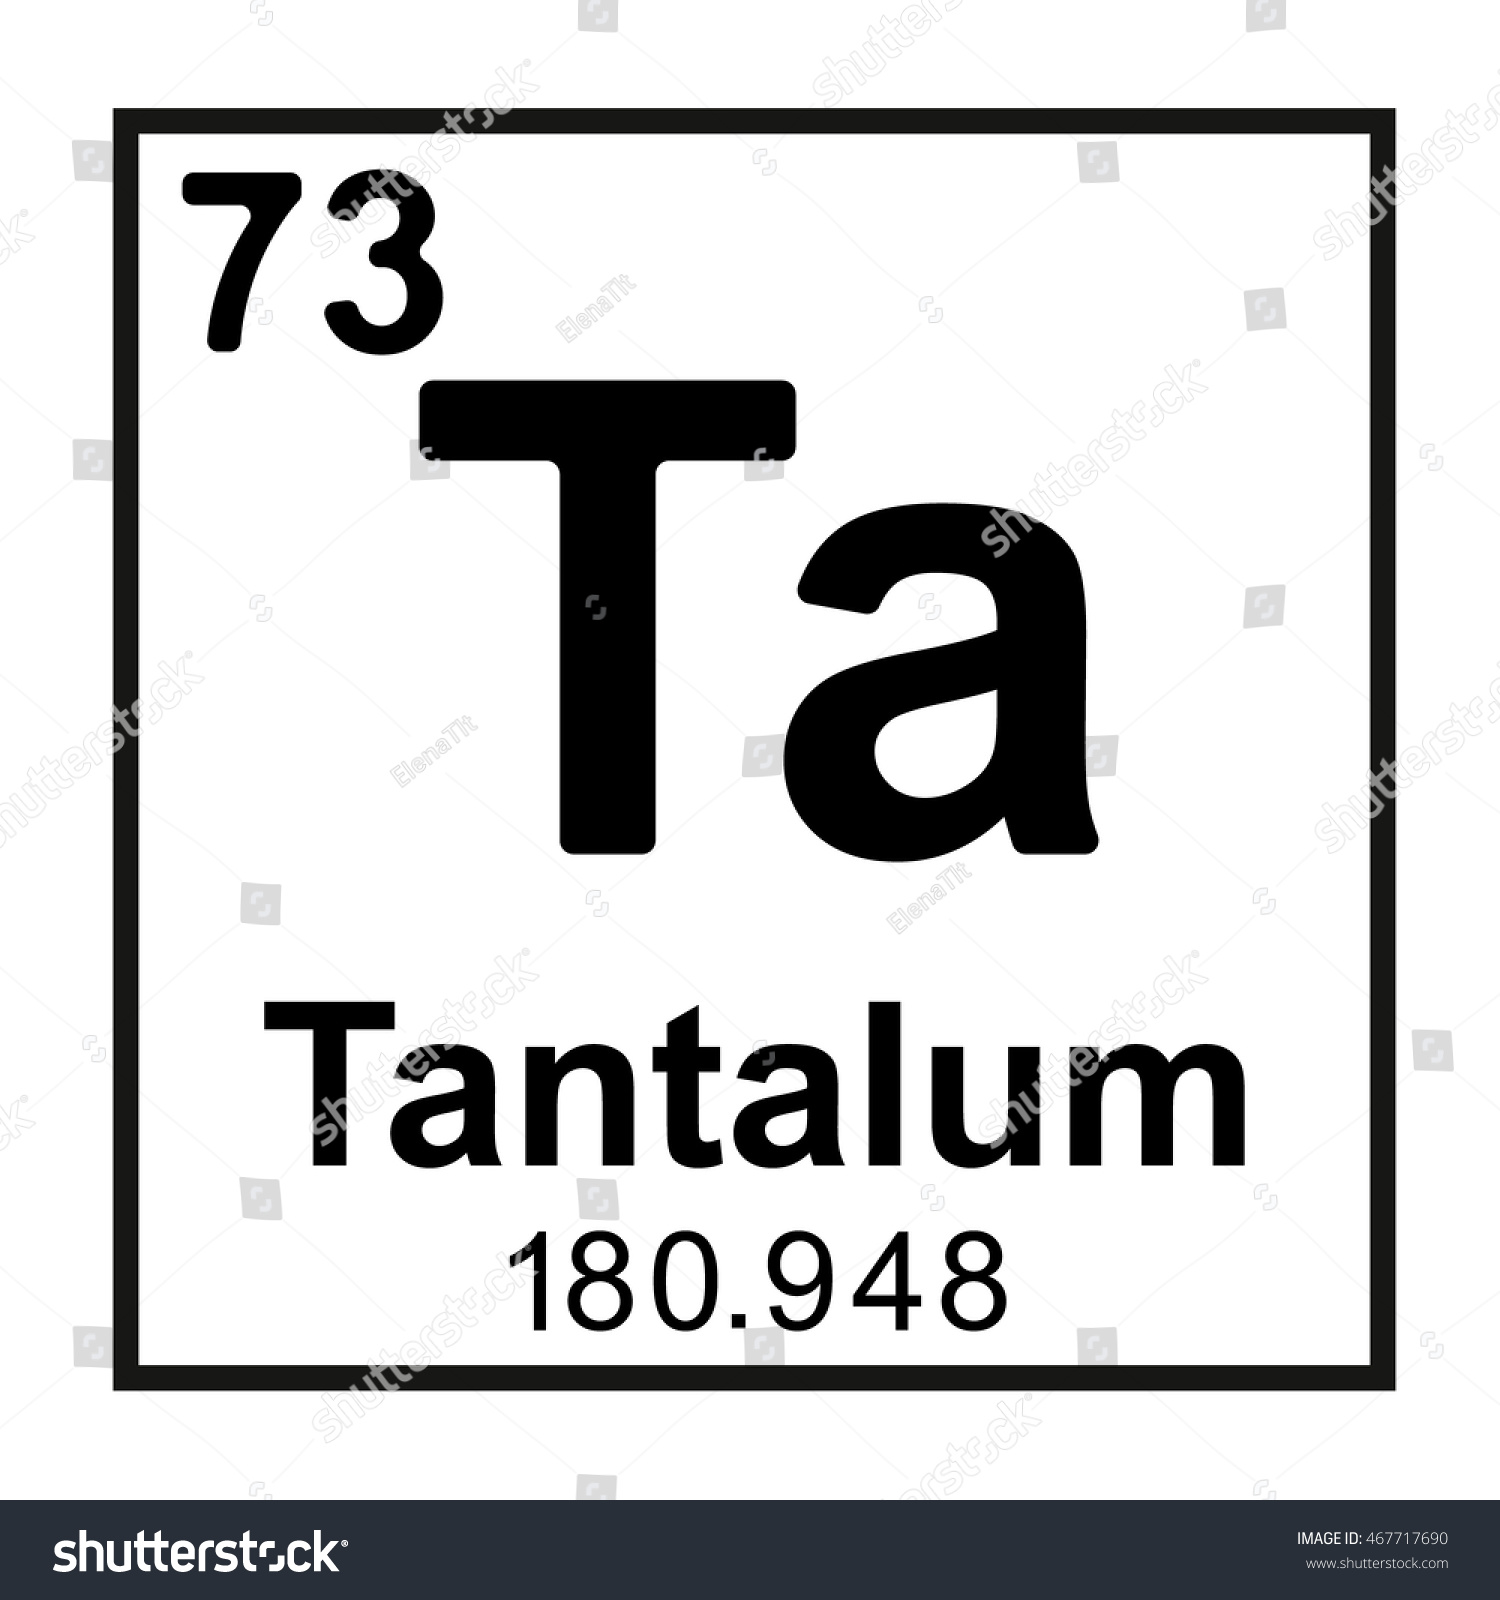 Periodic table element tantalum stock vector 467717690 shutterstock periodic table element tantalum gamestrikefo Images